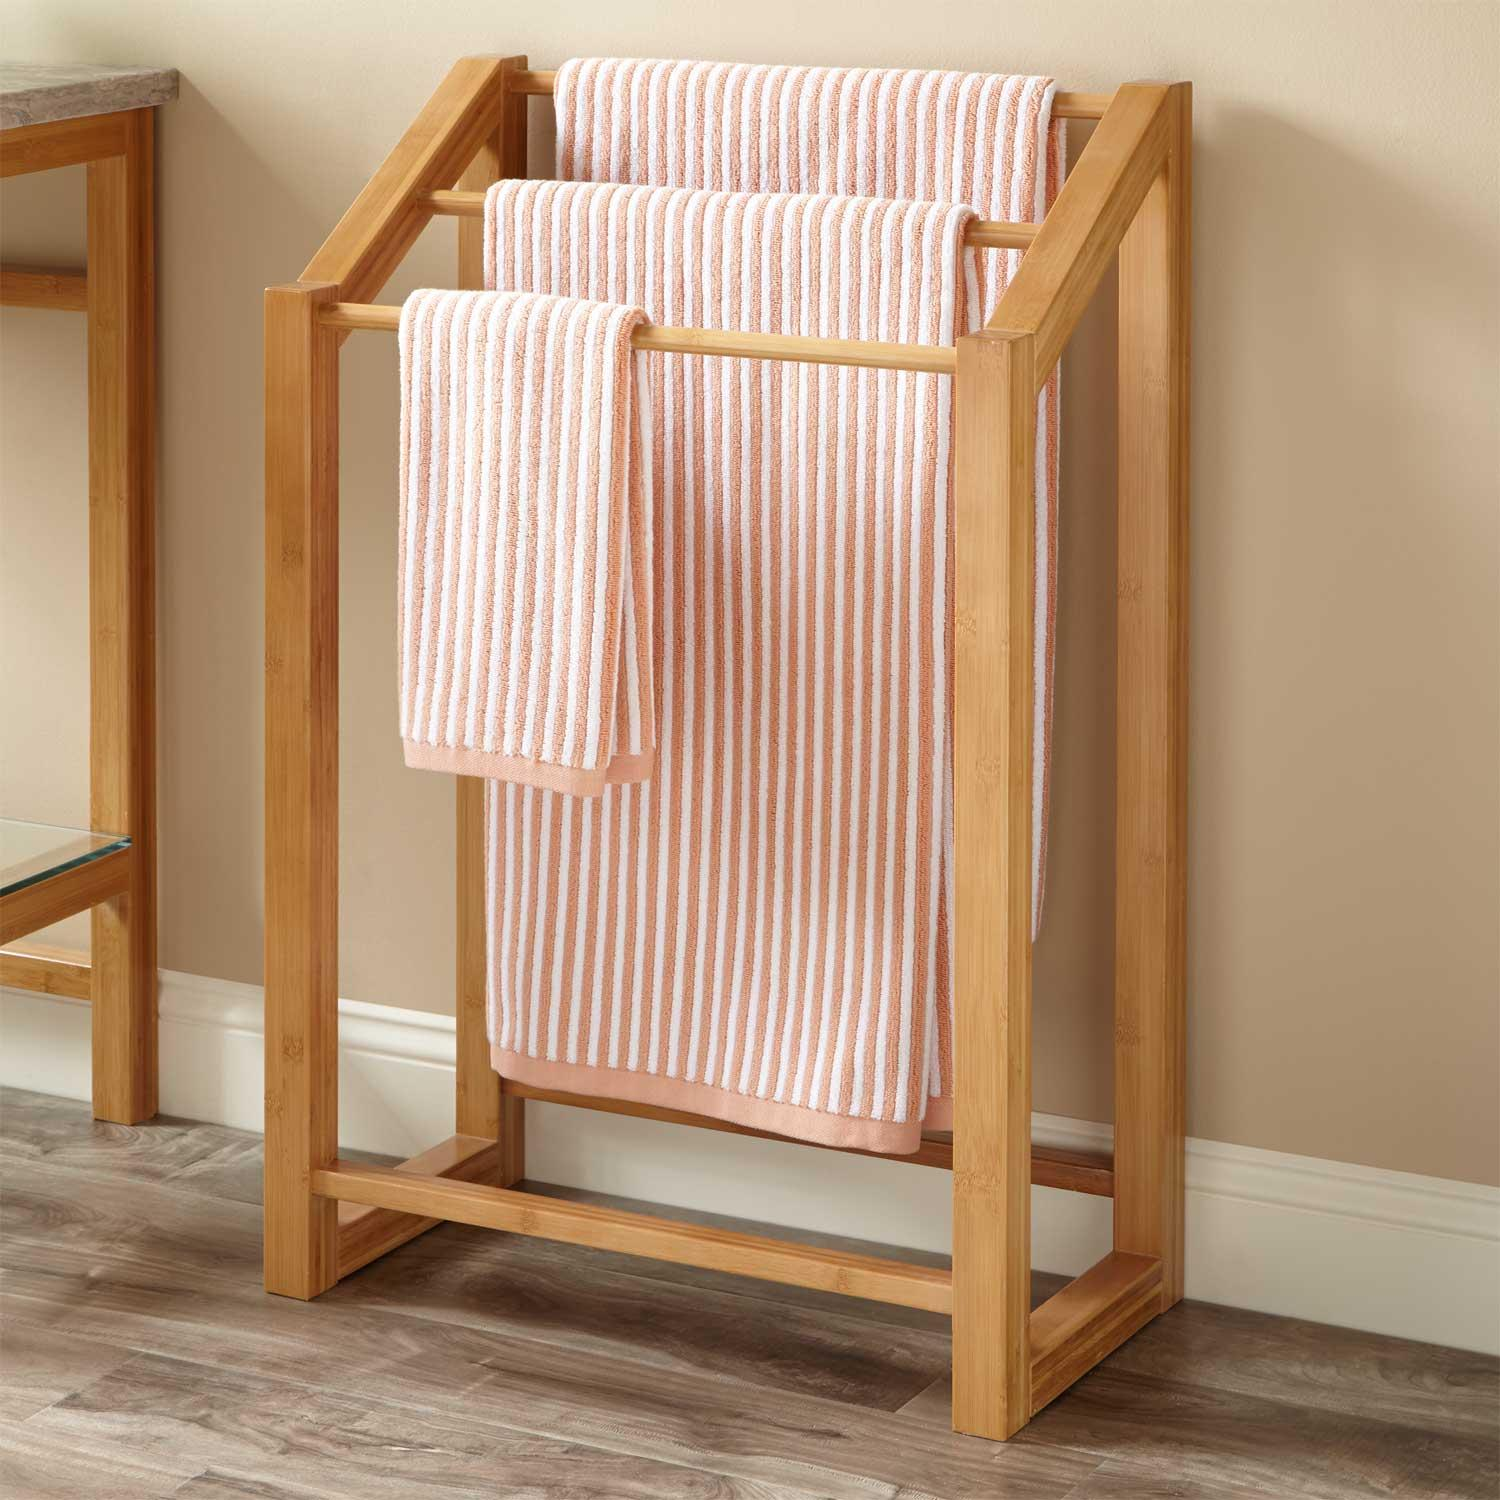 Wooden Towel Rack Furniture